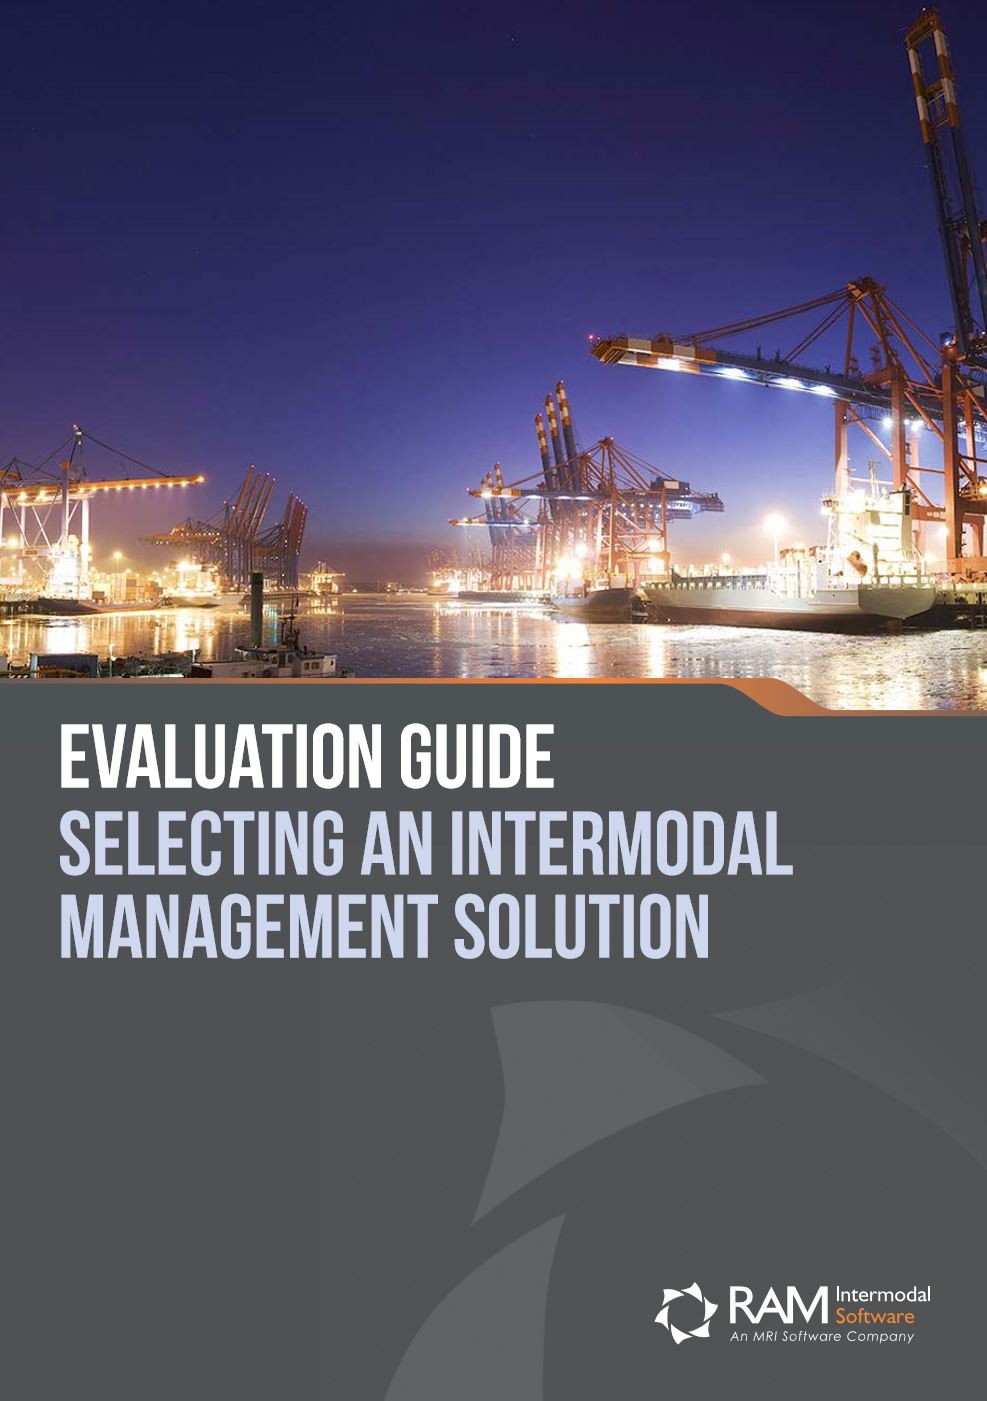 Evaluation Guide: Selecting An Intermodal Management Solution